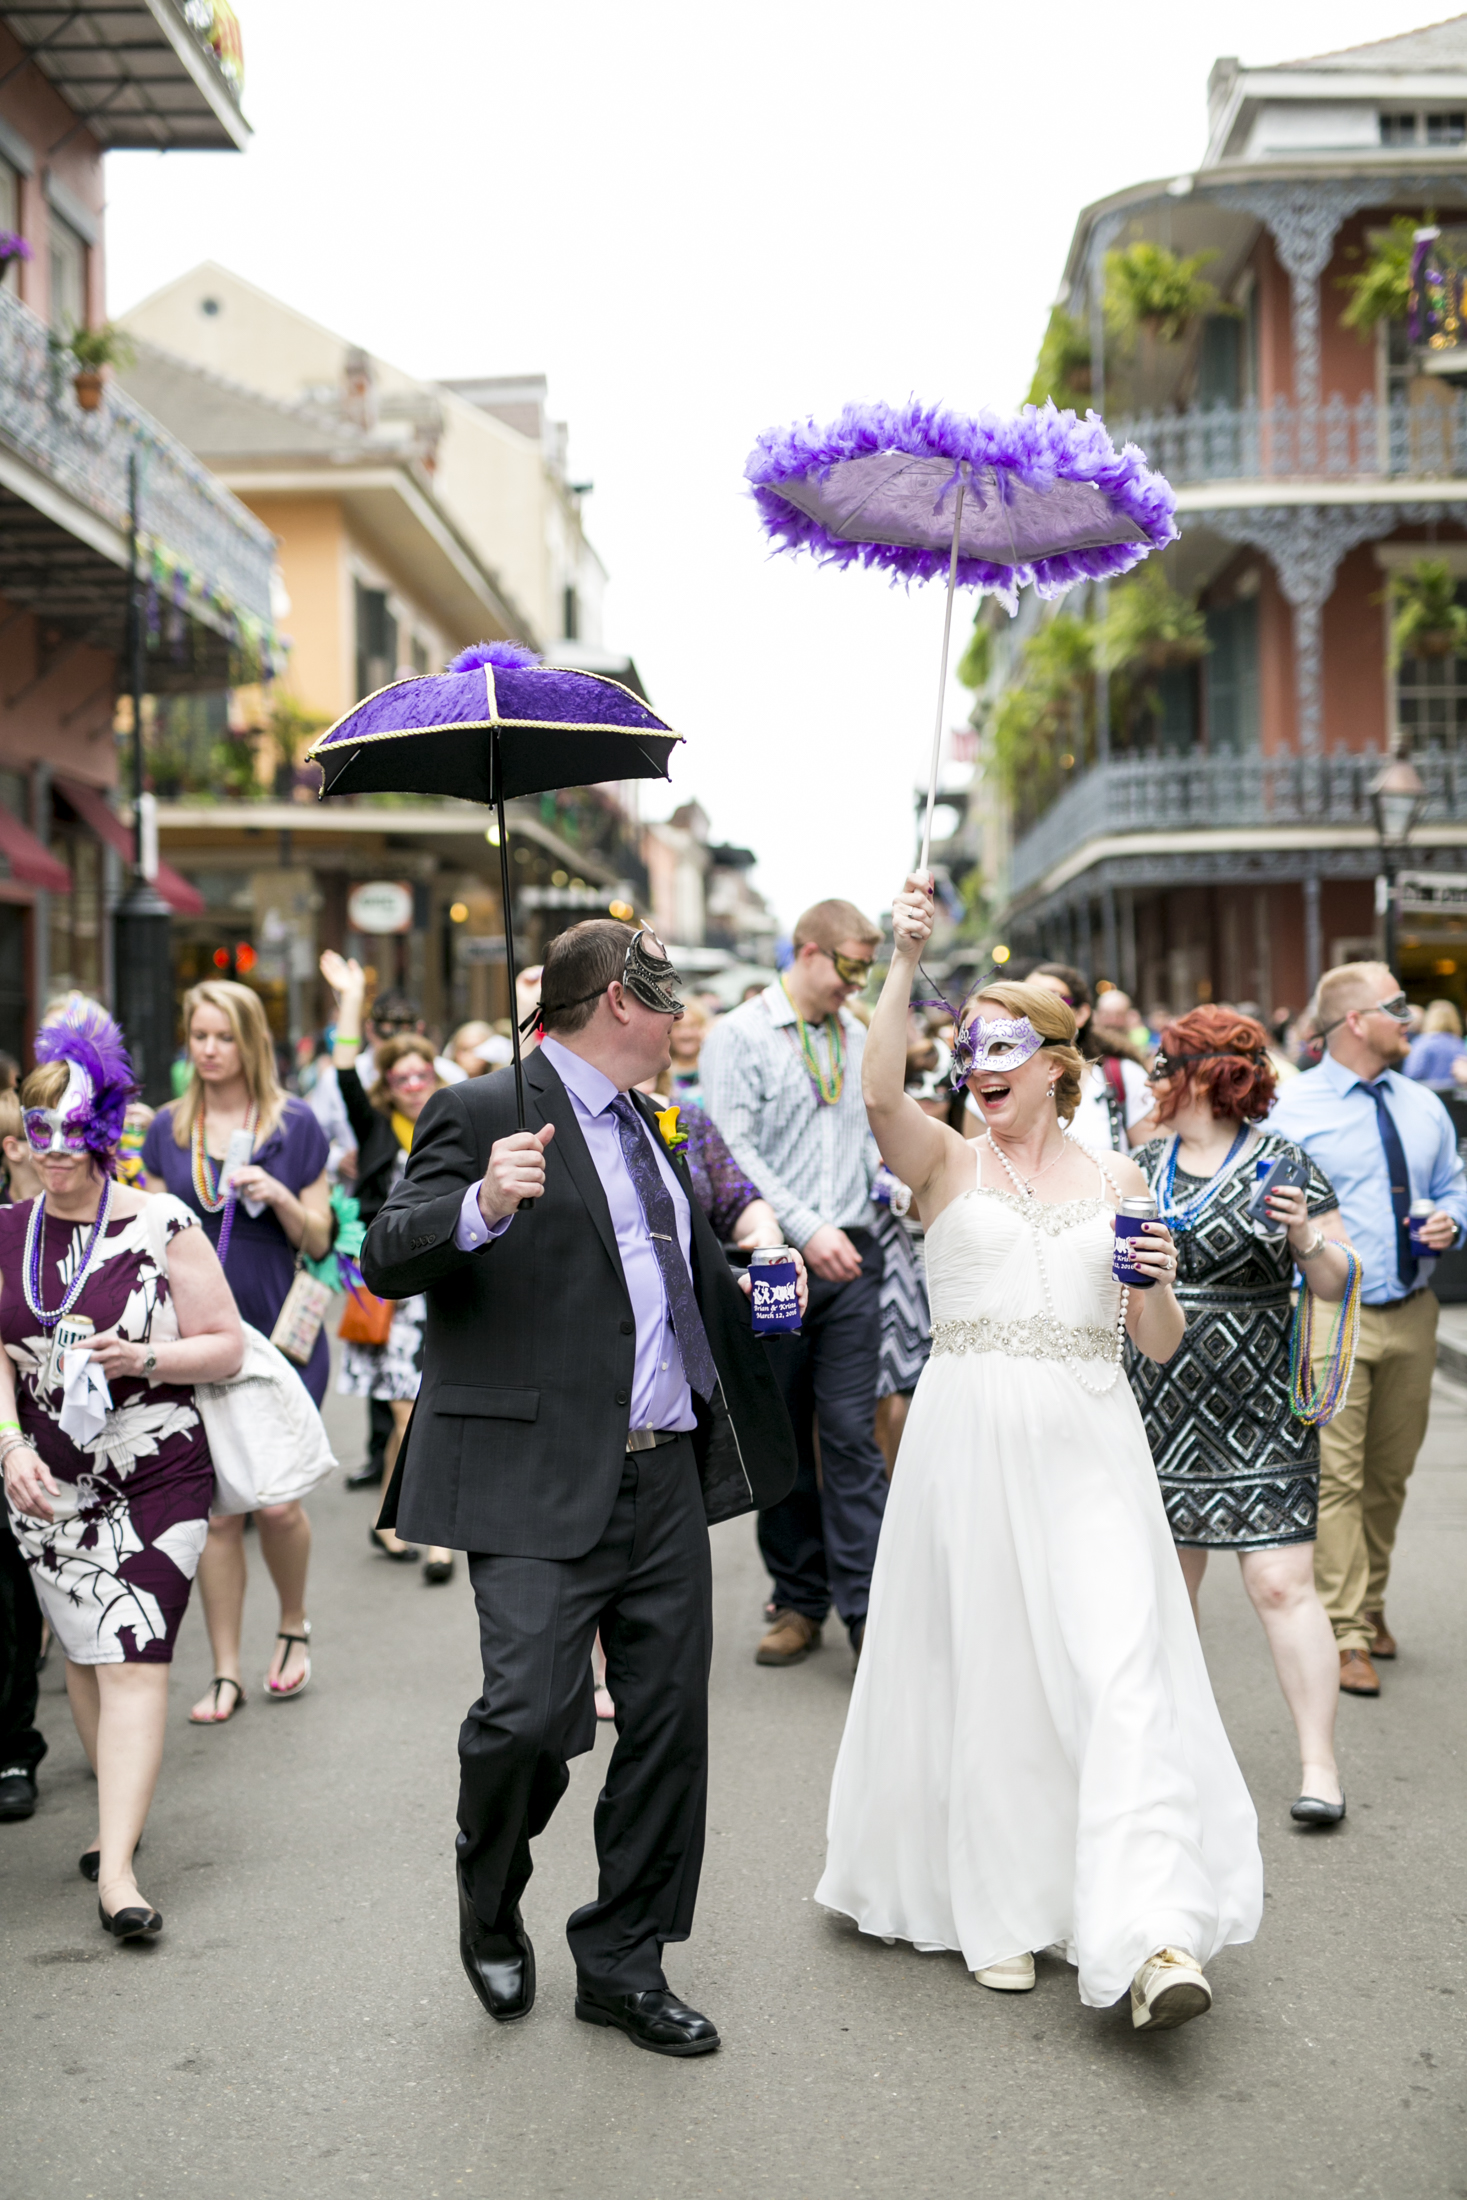 Seattle-wedding-destination-new-orleans-parade-french-quarter-0056.jpg